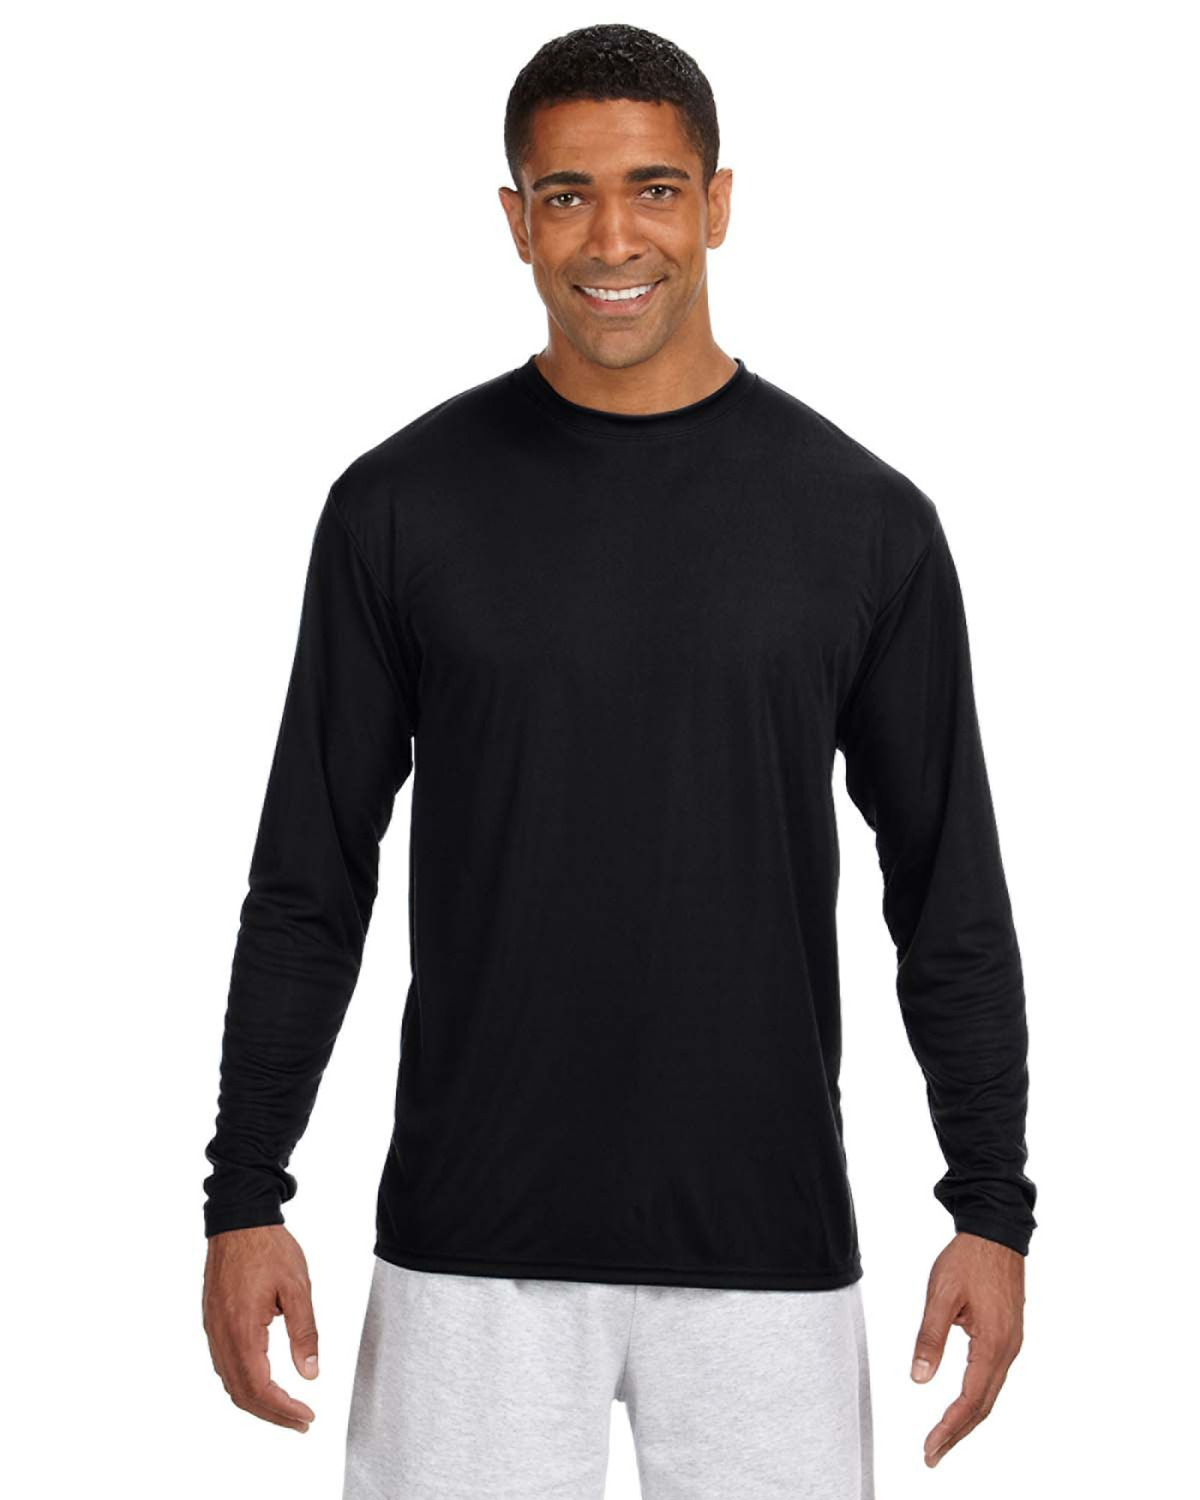 A4 N3165 - Adult Cooling Performance Long-Sleeve Tee